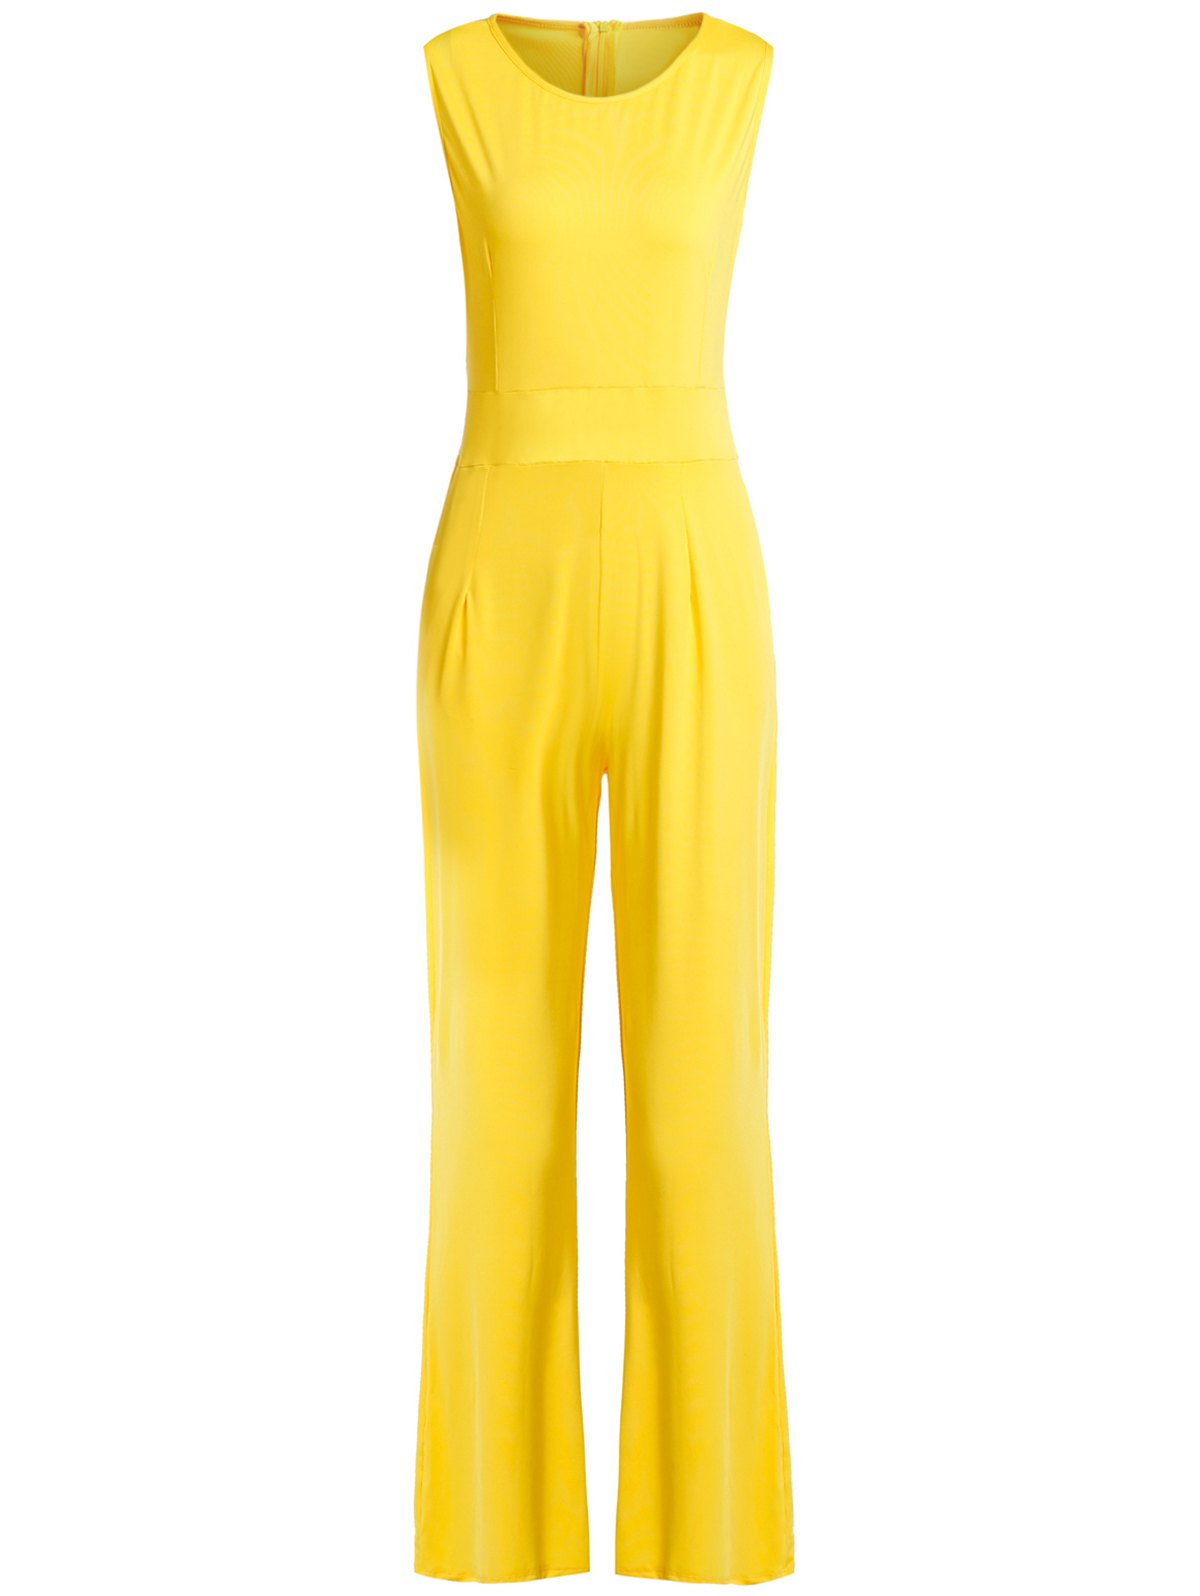 Stylish V-Neck Sleeveless Solid Color Jumpsuit For Women - YELLOW XL